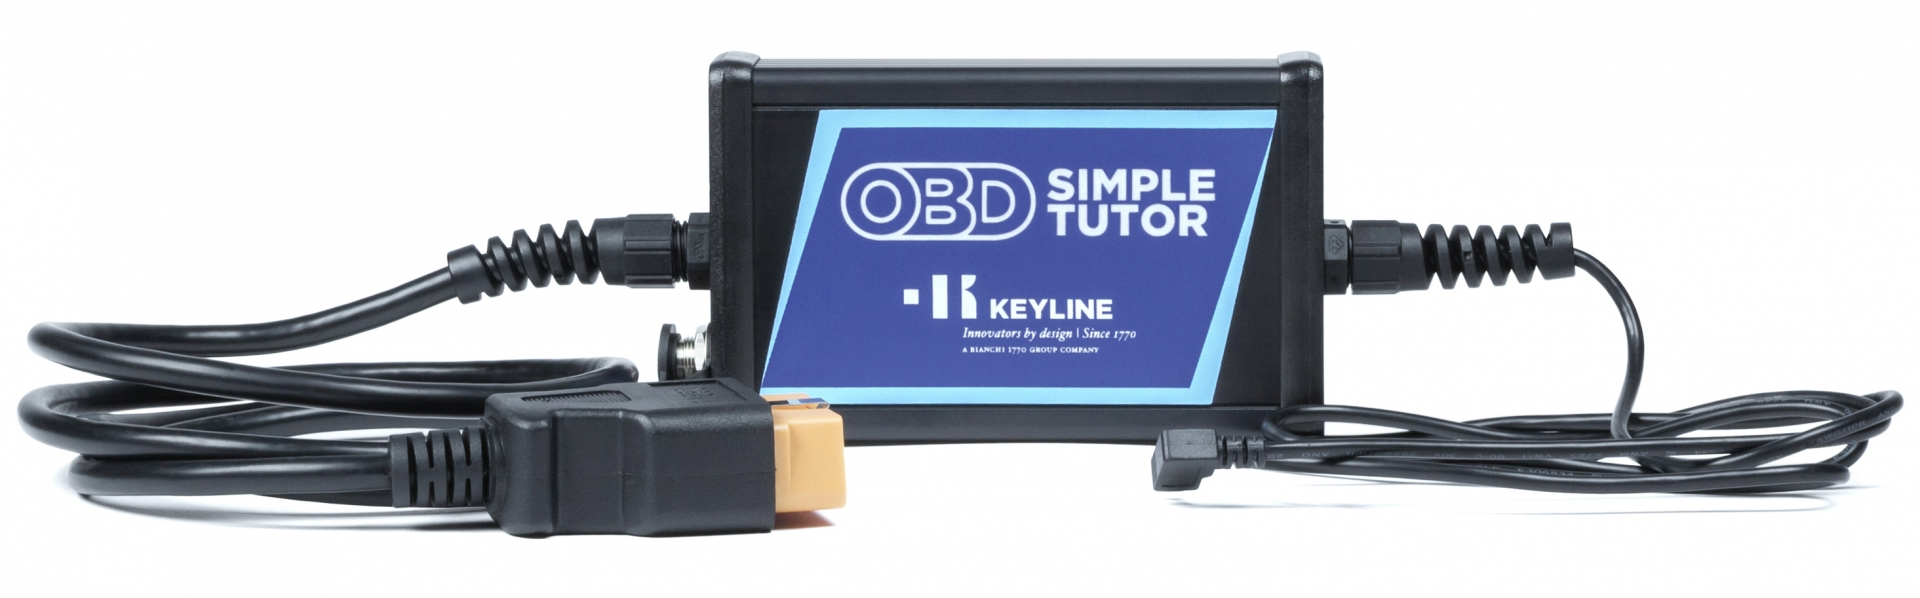 OBD Simple Tutor